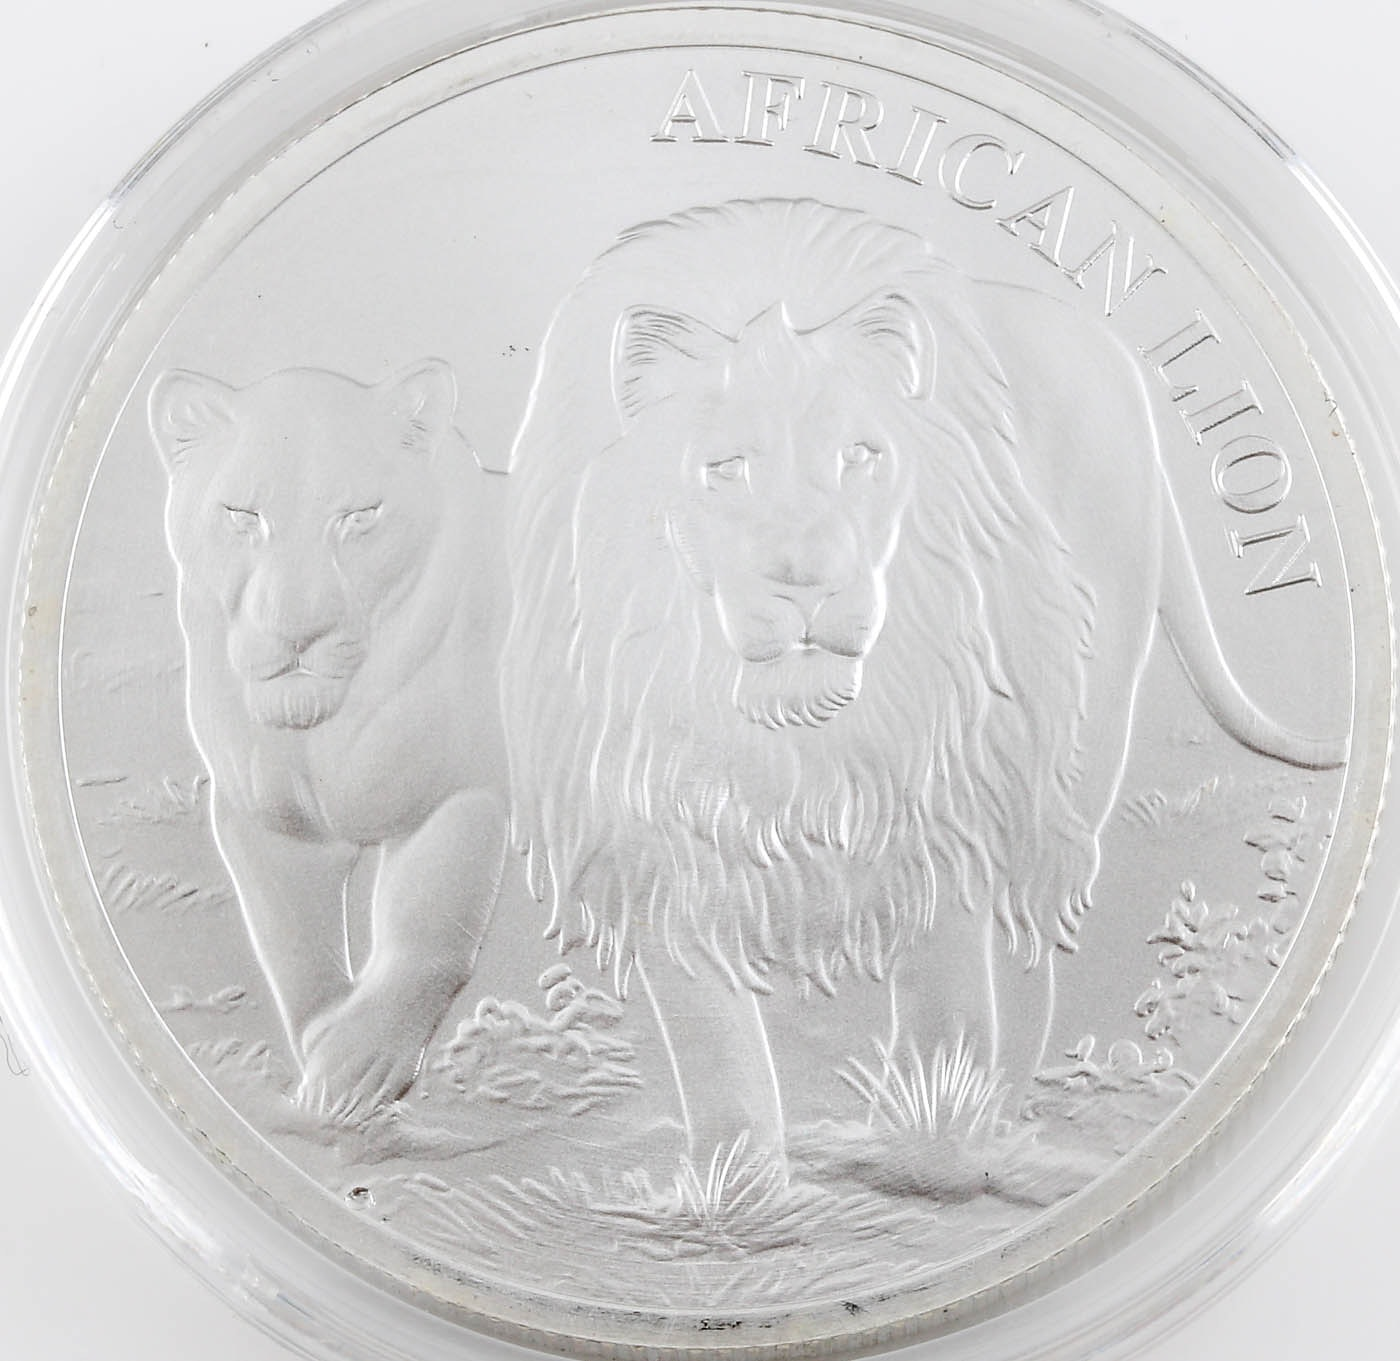 2016 African Lion Commemorative 5000 Franc Silver Coin from Republic of Congo